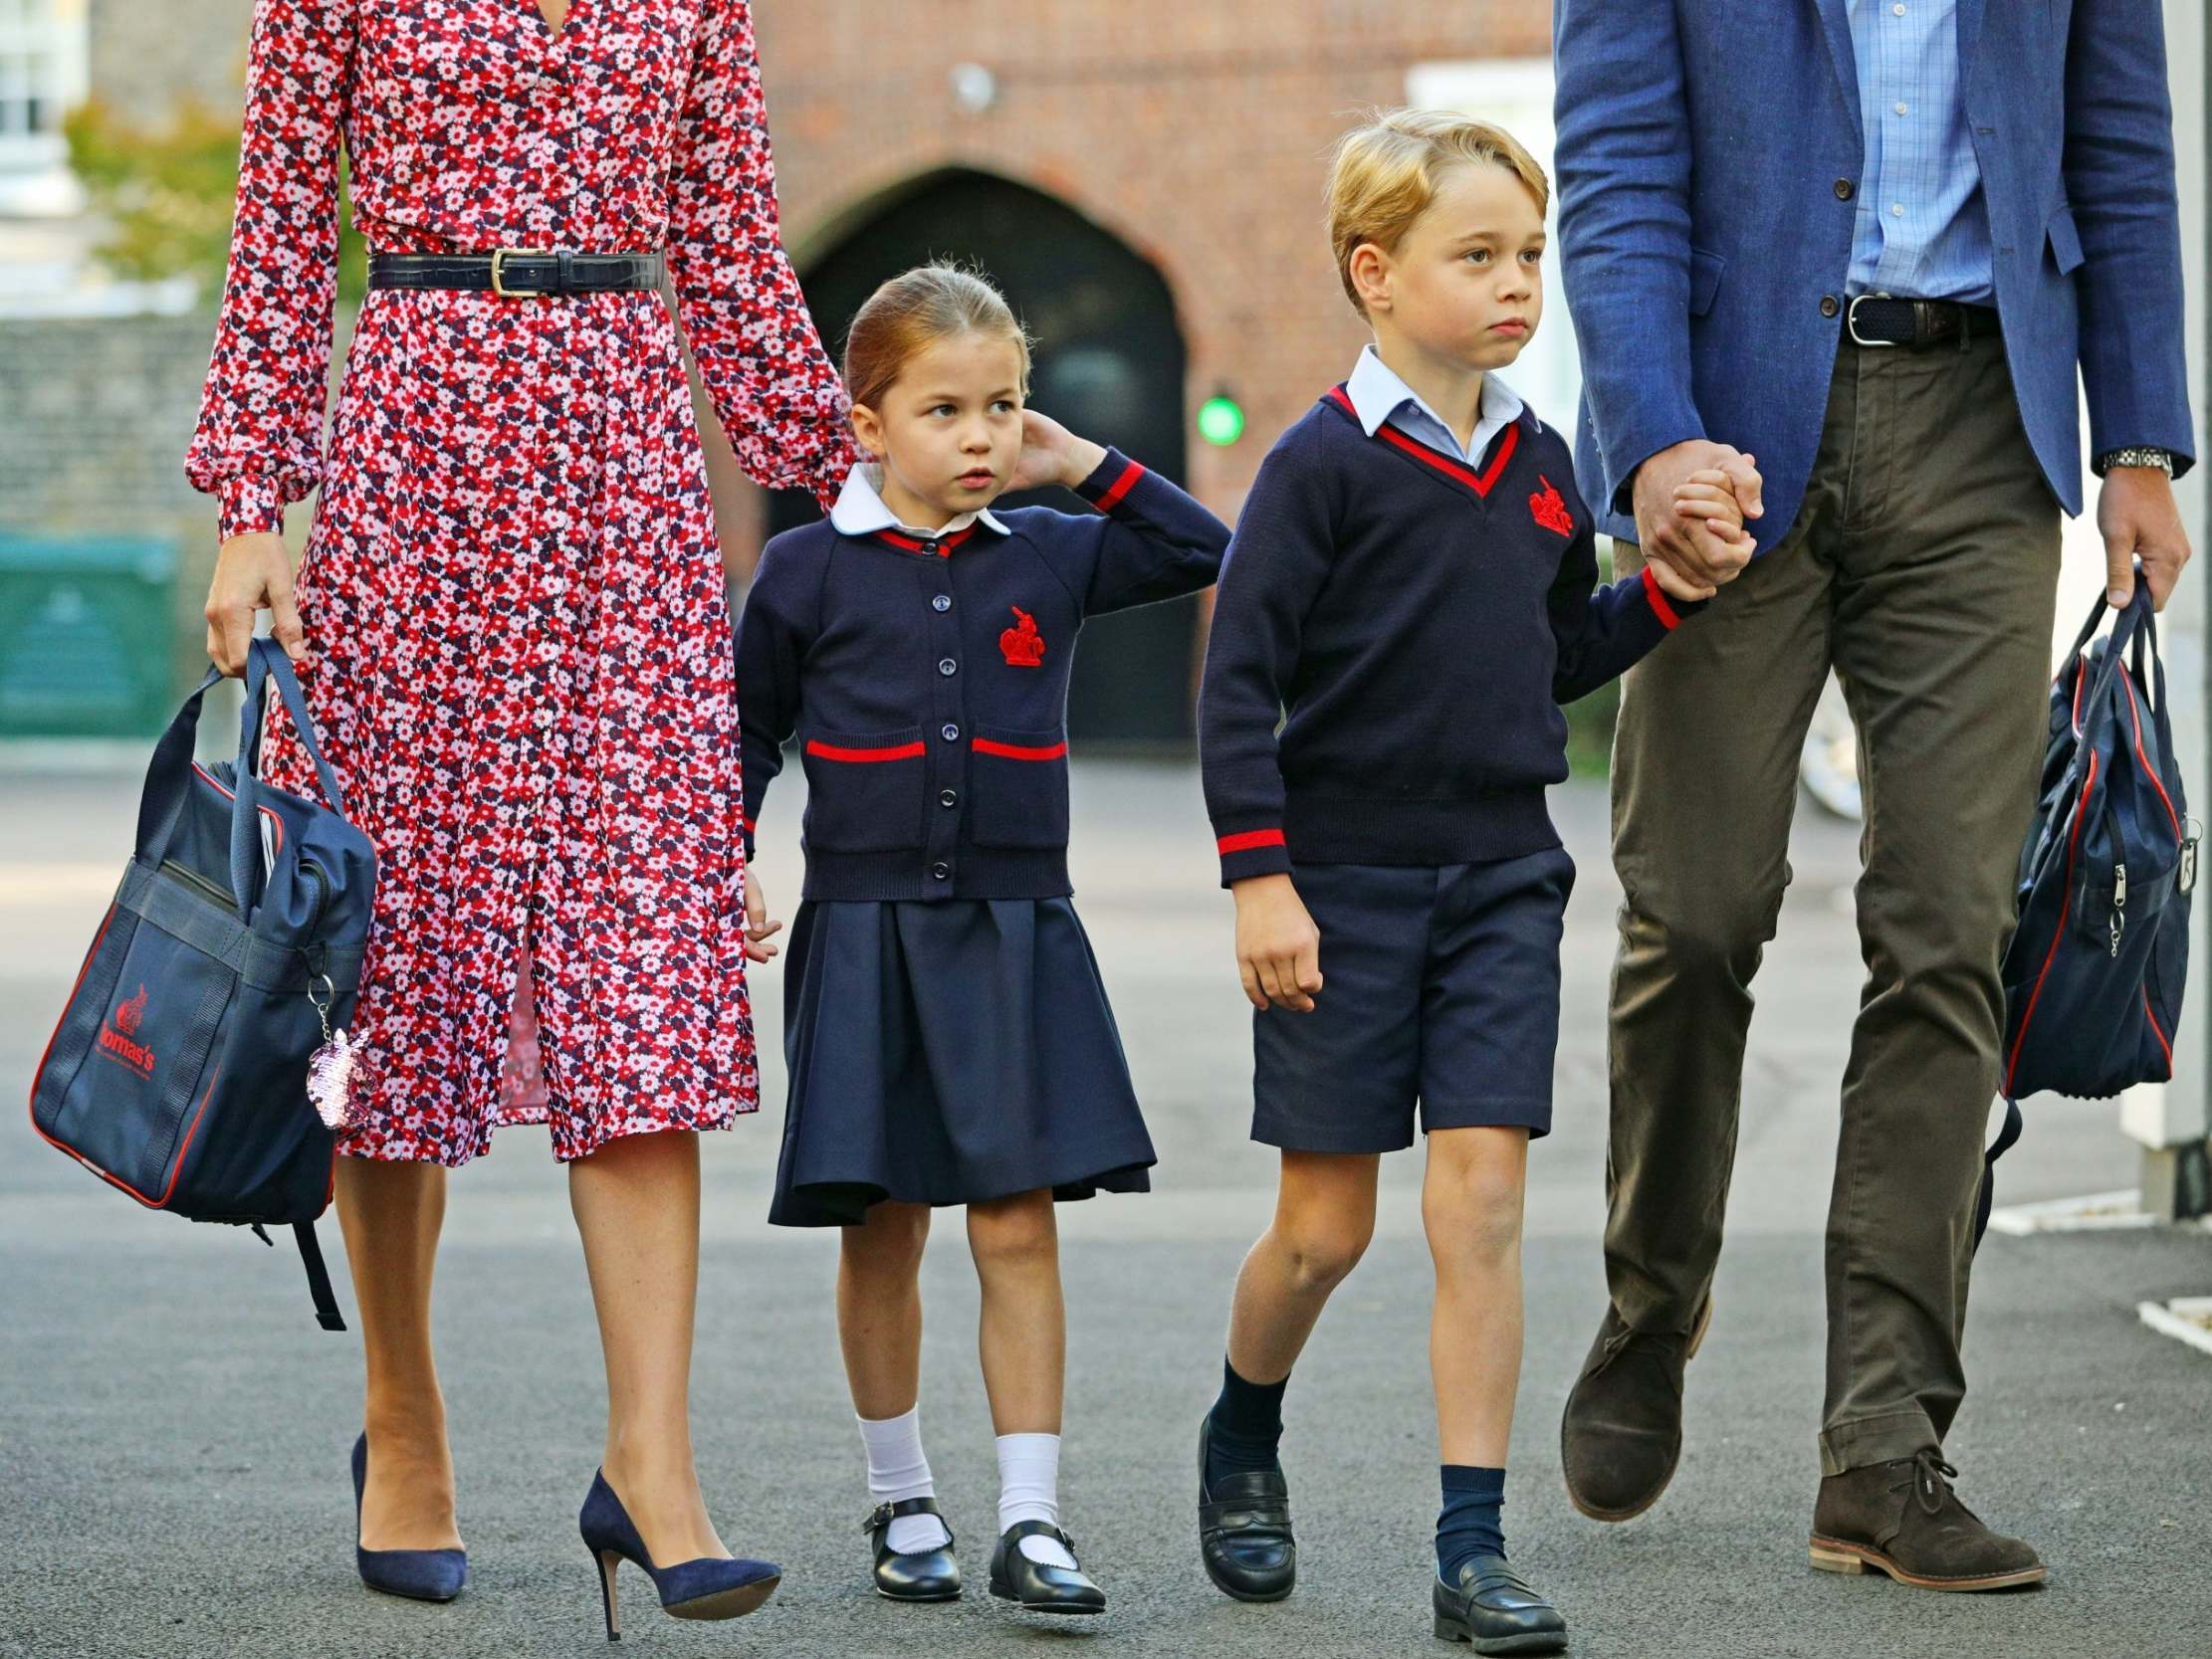 Princess Charlotte arrives at school with Prince William